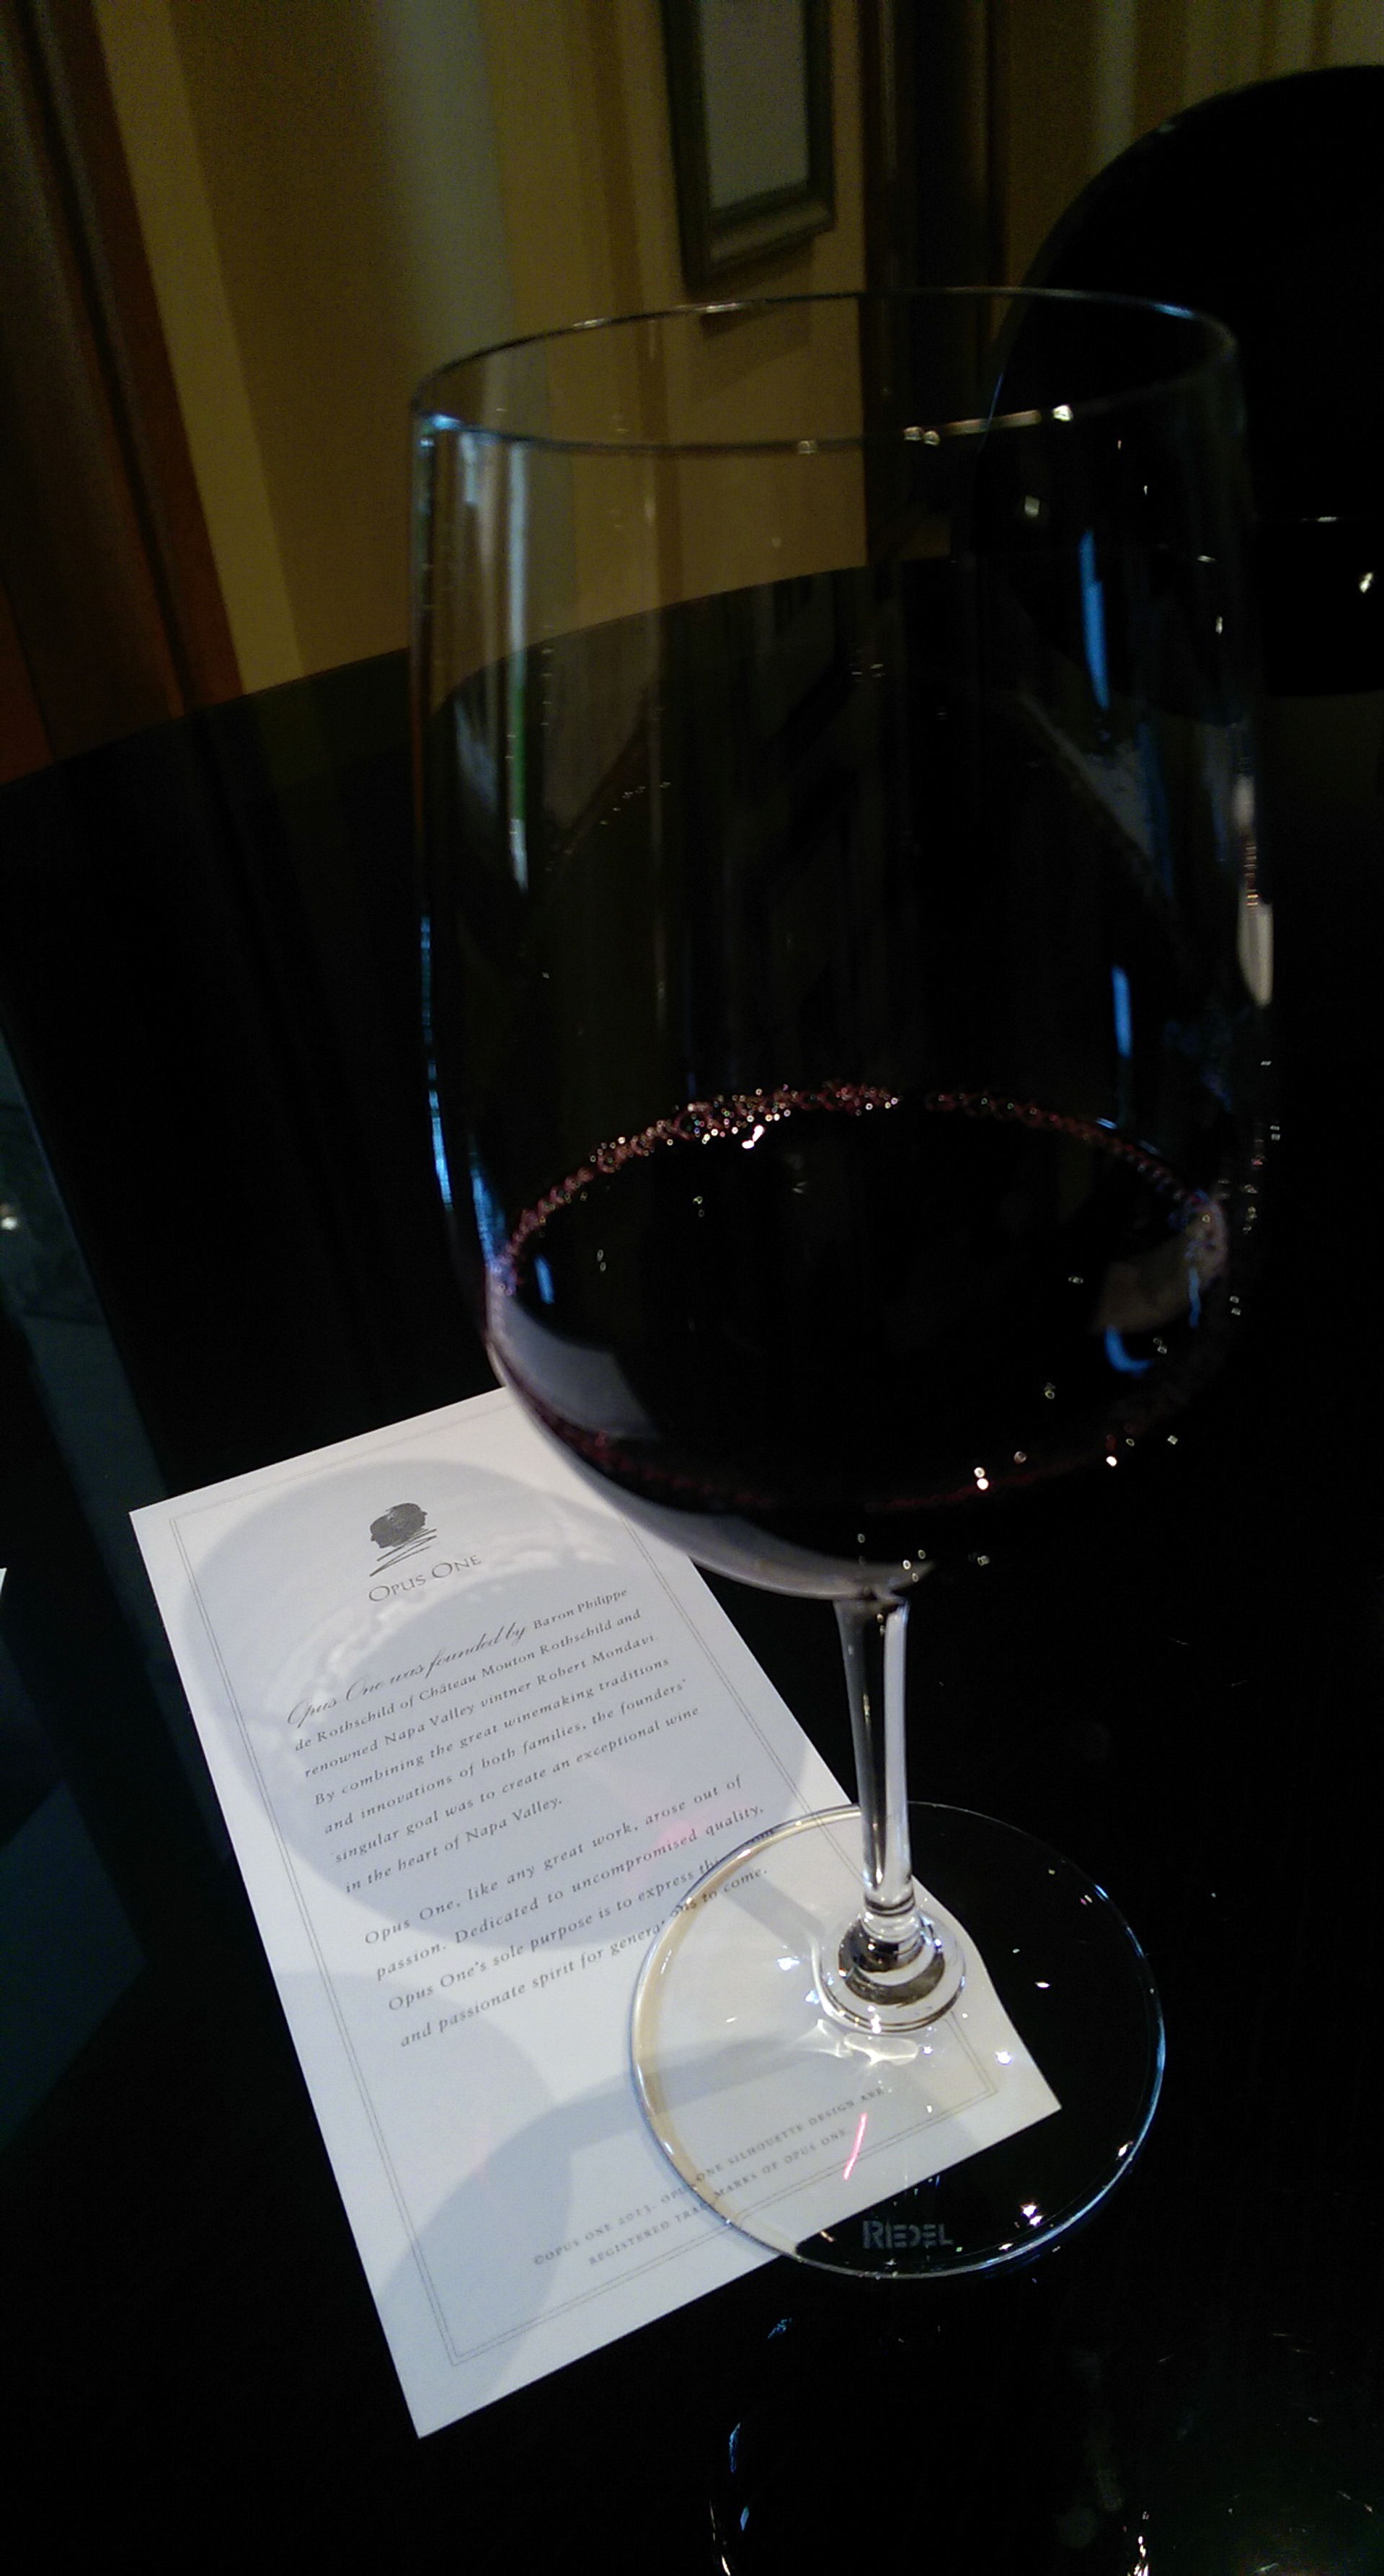 Wine tasting in Napa - Opus One